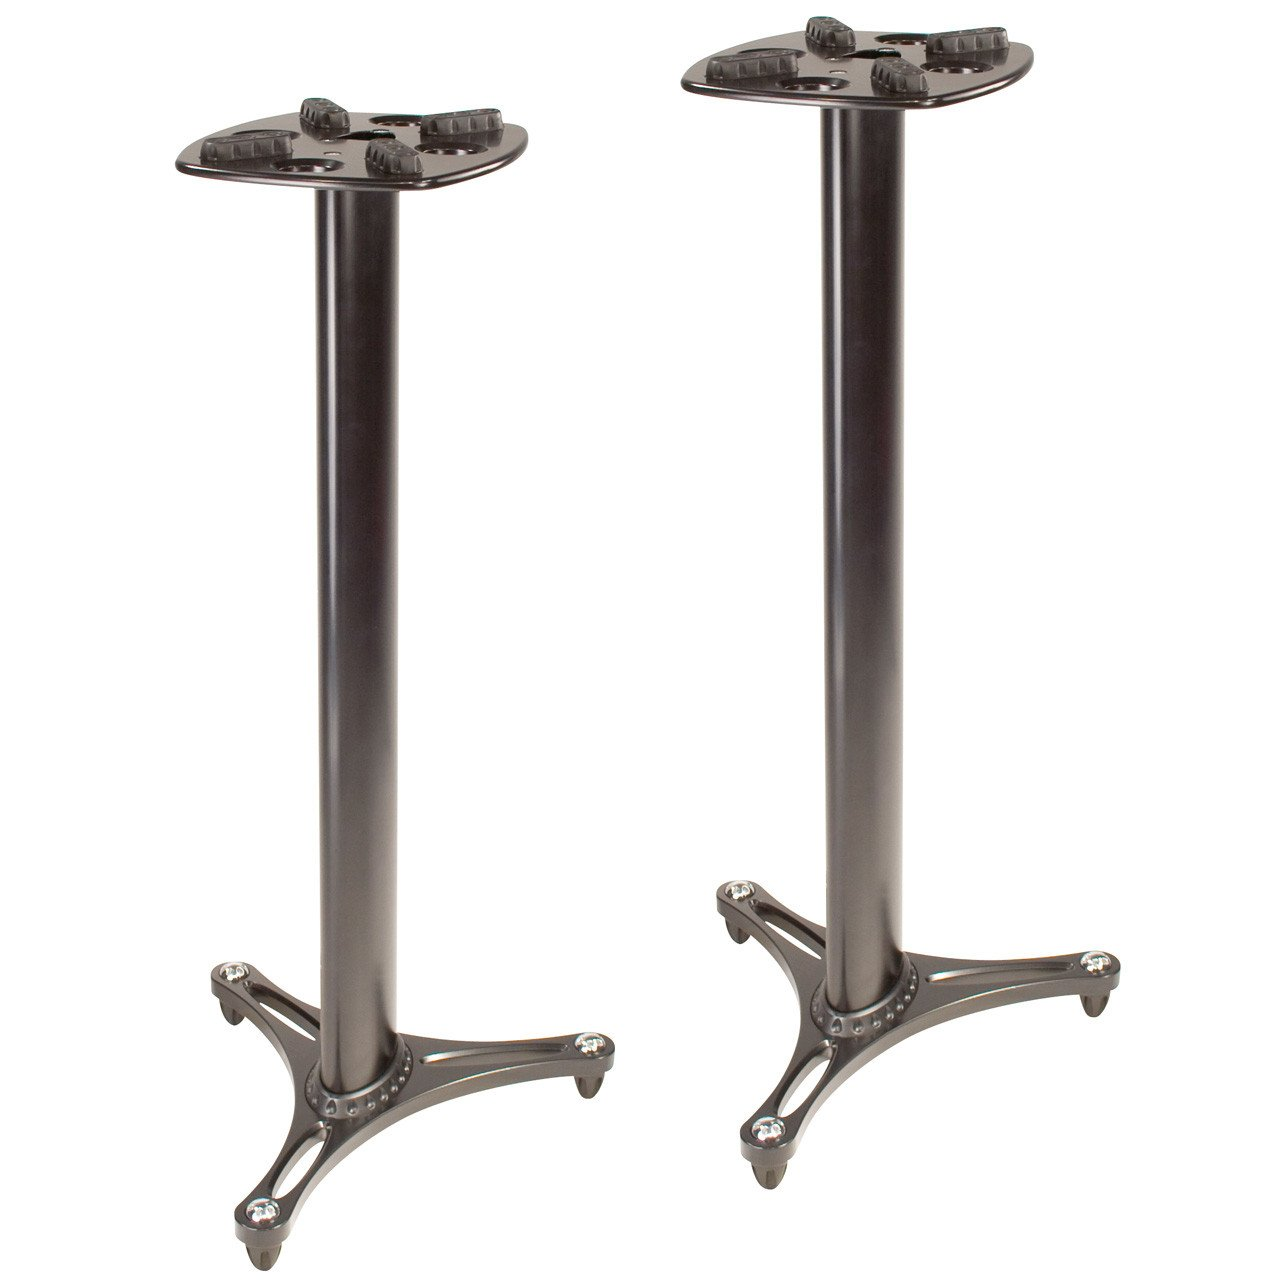 Ultimate Support MS-90/45B studio monitor stands